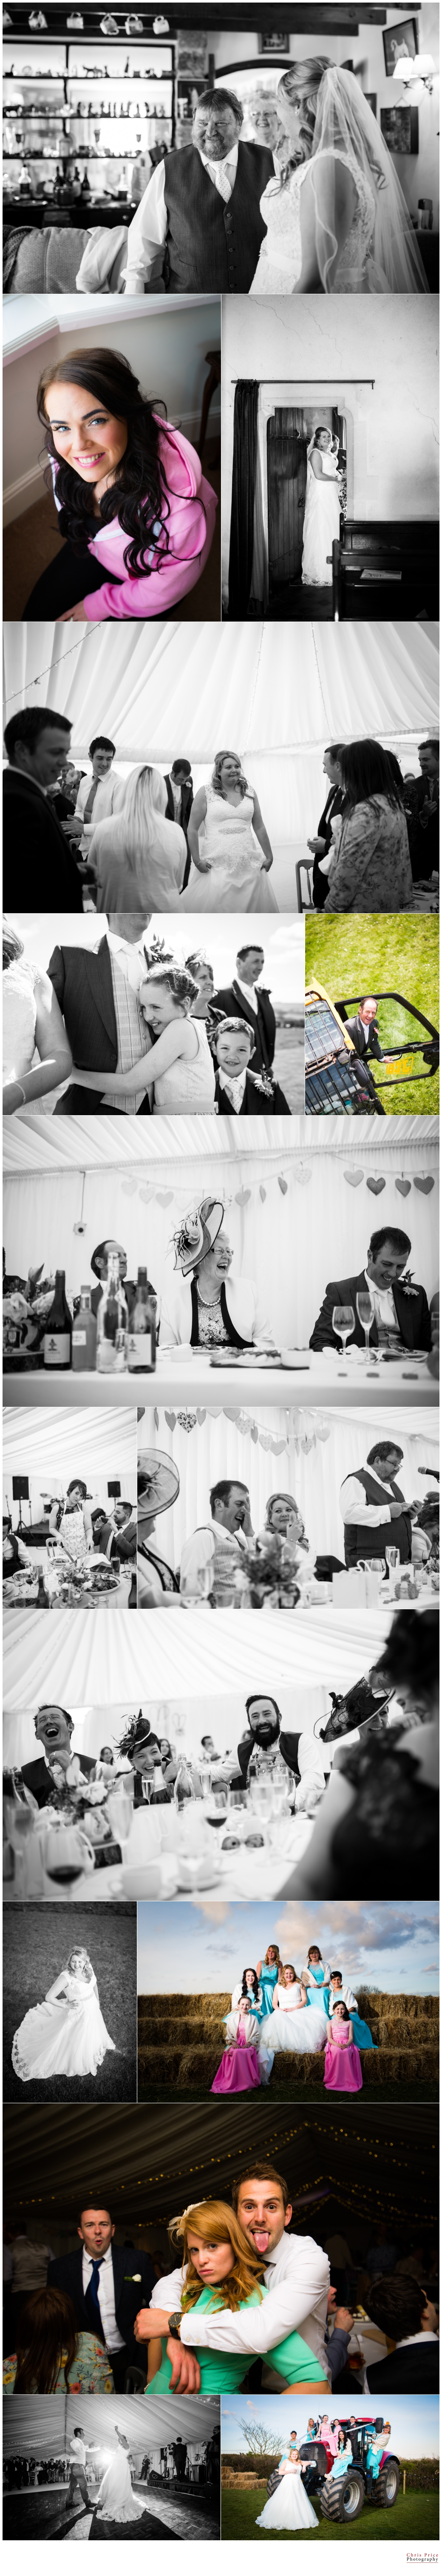 candid wedding photography, Chris Price Photography, different wedding photography, Pembrokeshire Wedding Photography, South Wales Wedding Photography, unusual wedding photography